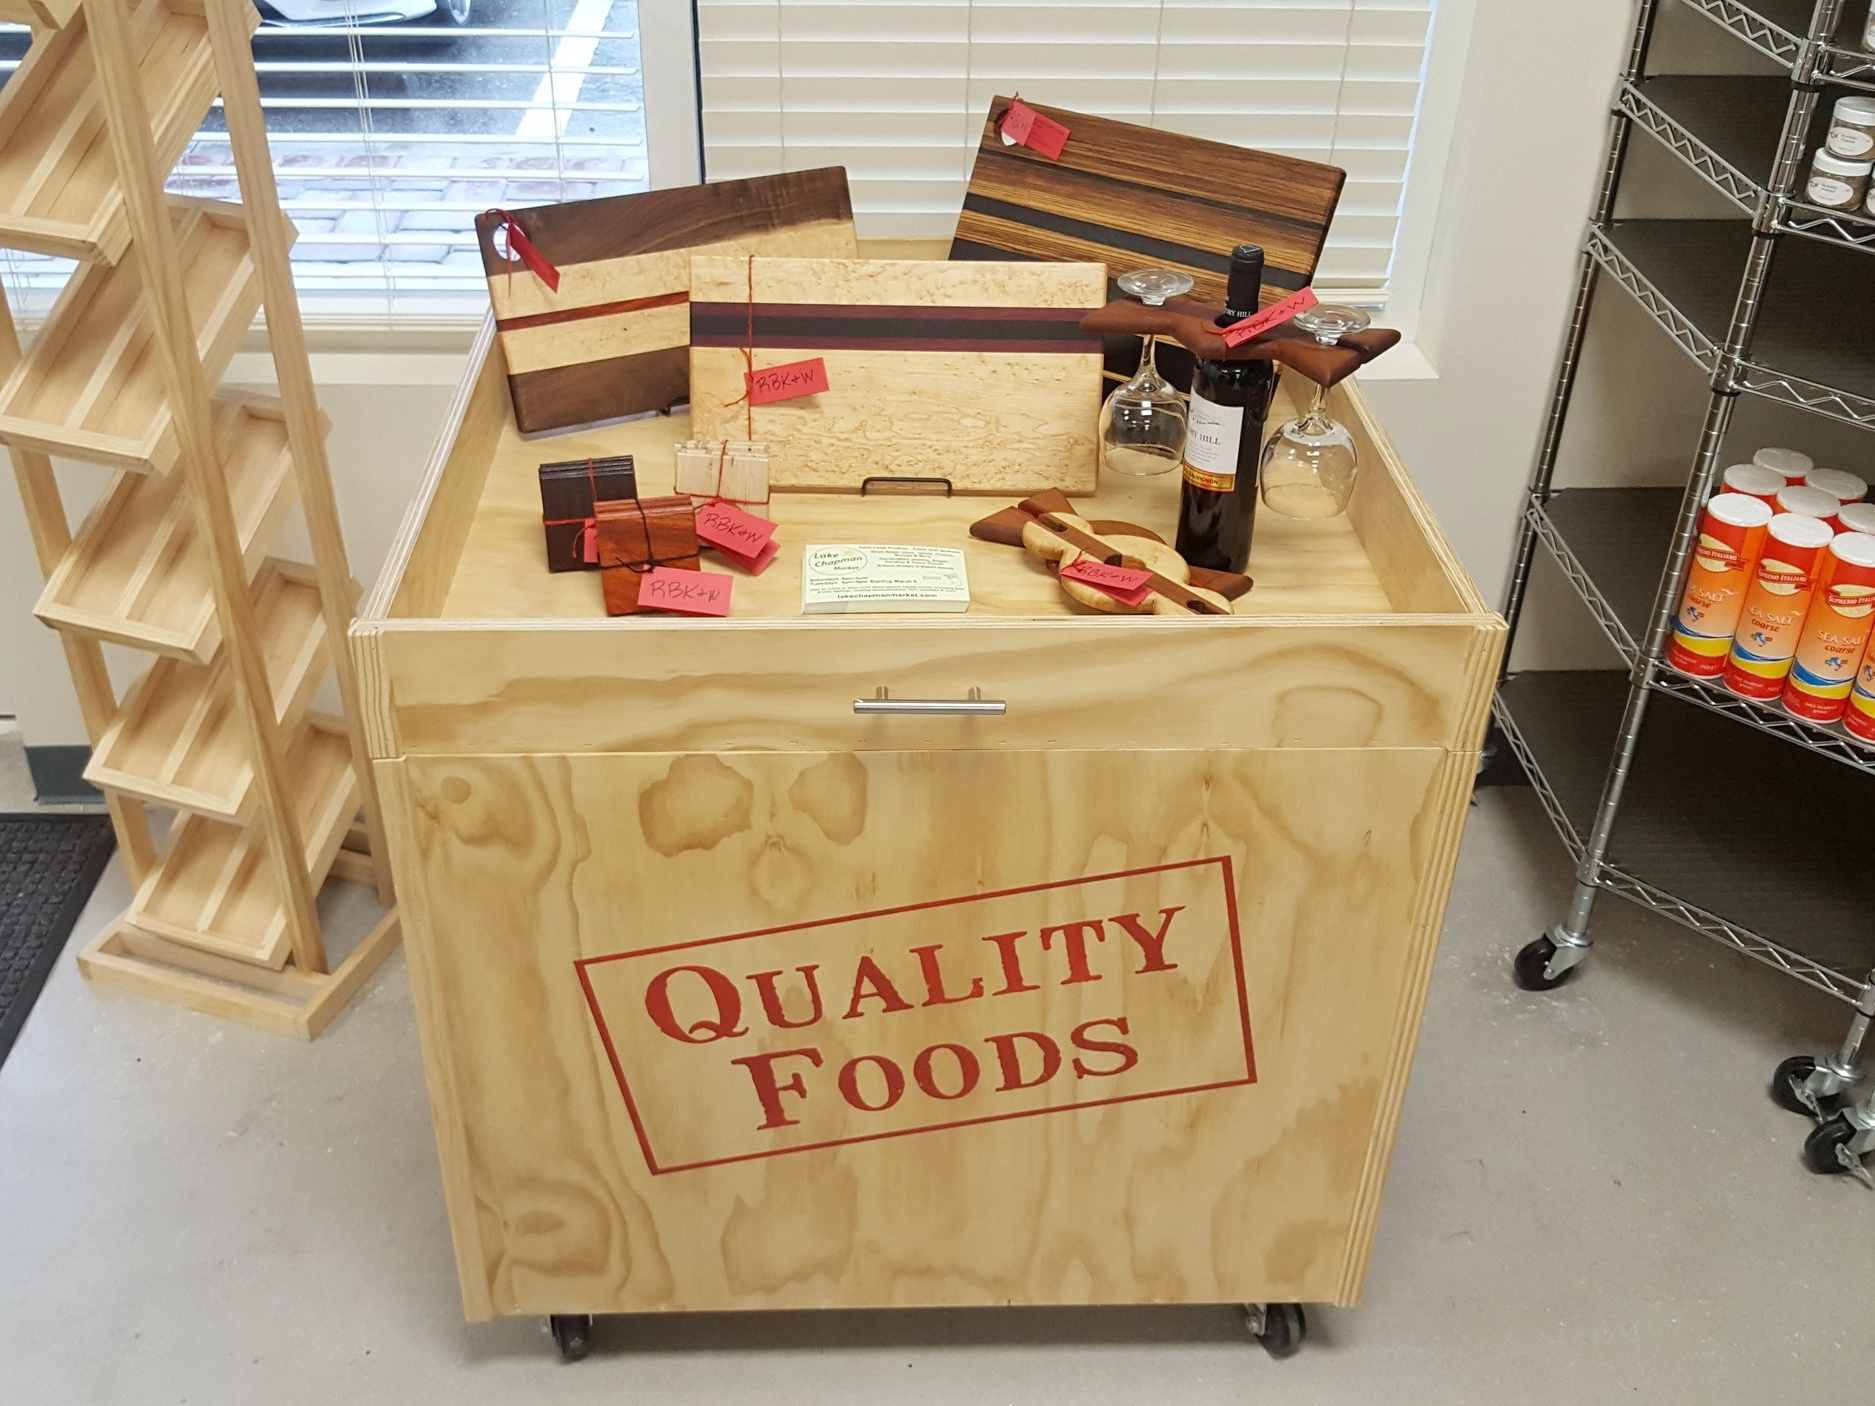 Quality Foods - Lake Chapman Plaza16307 Florida Ave.Lutz, Florida 33549